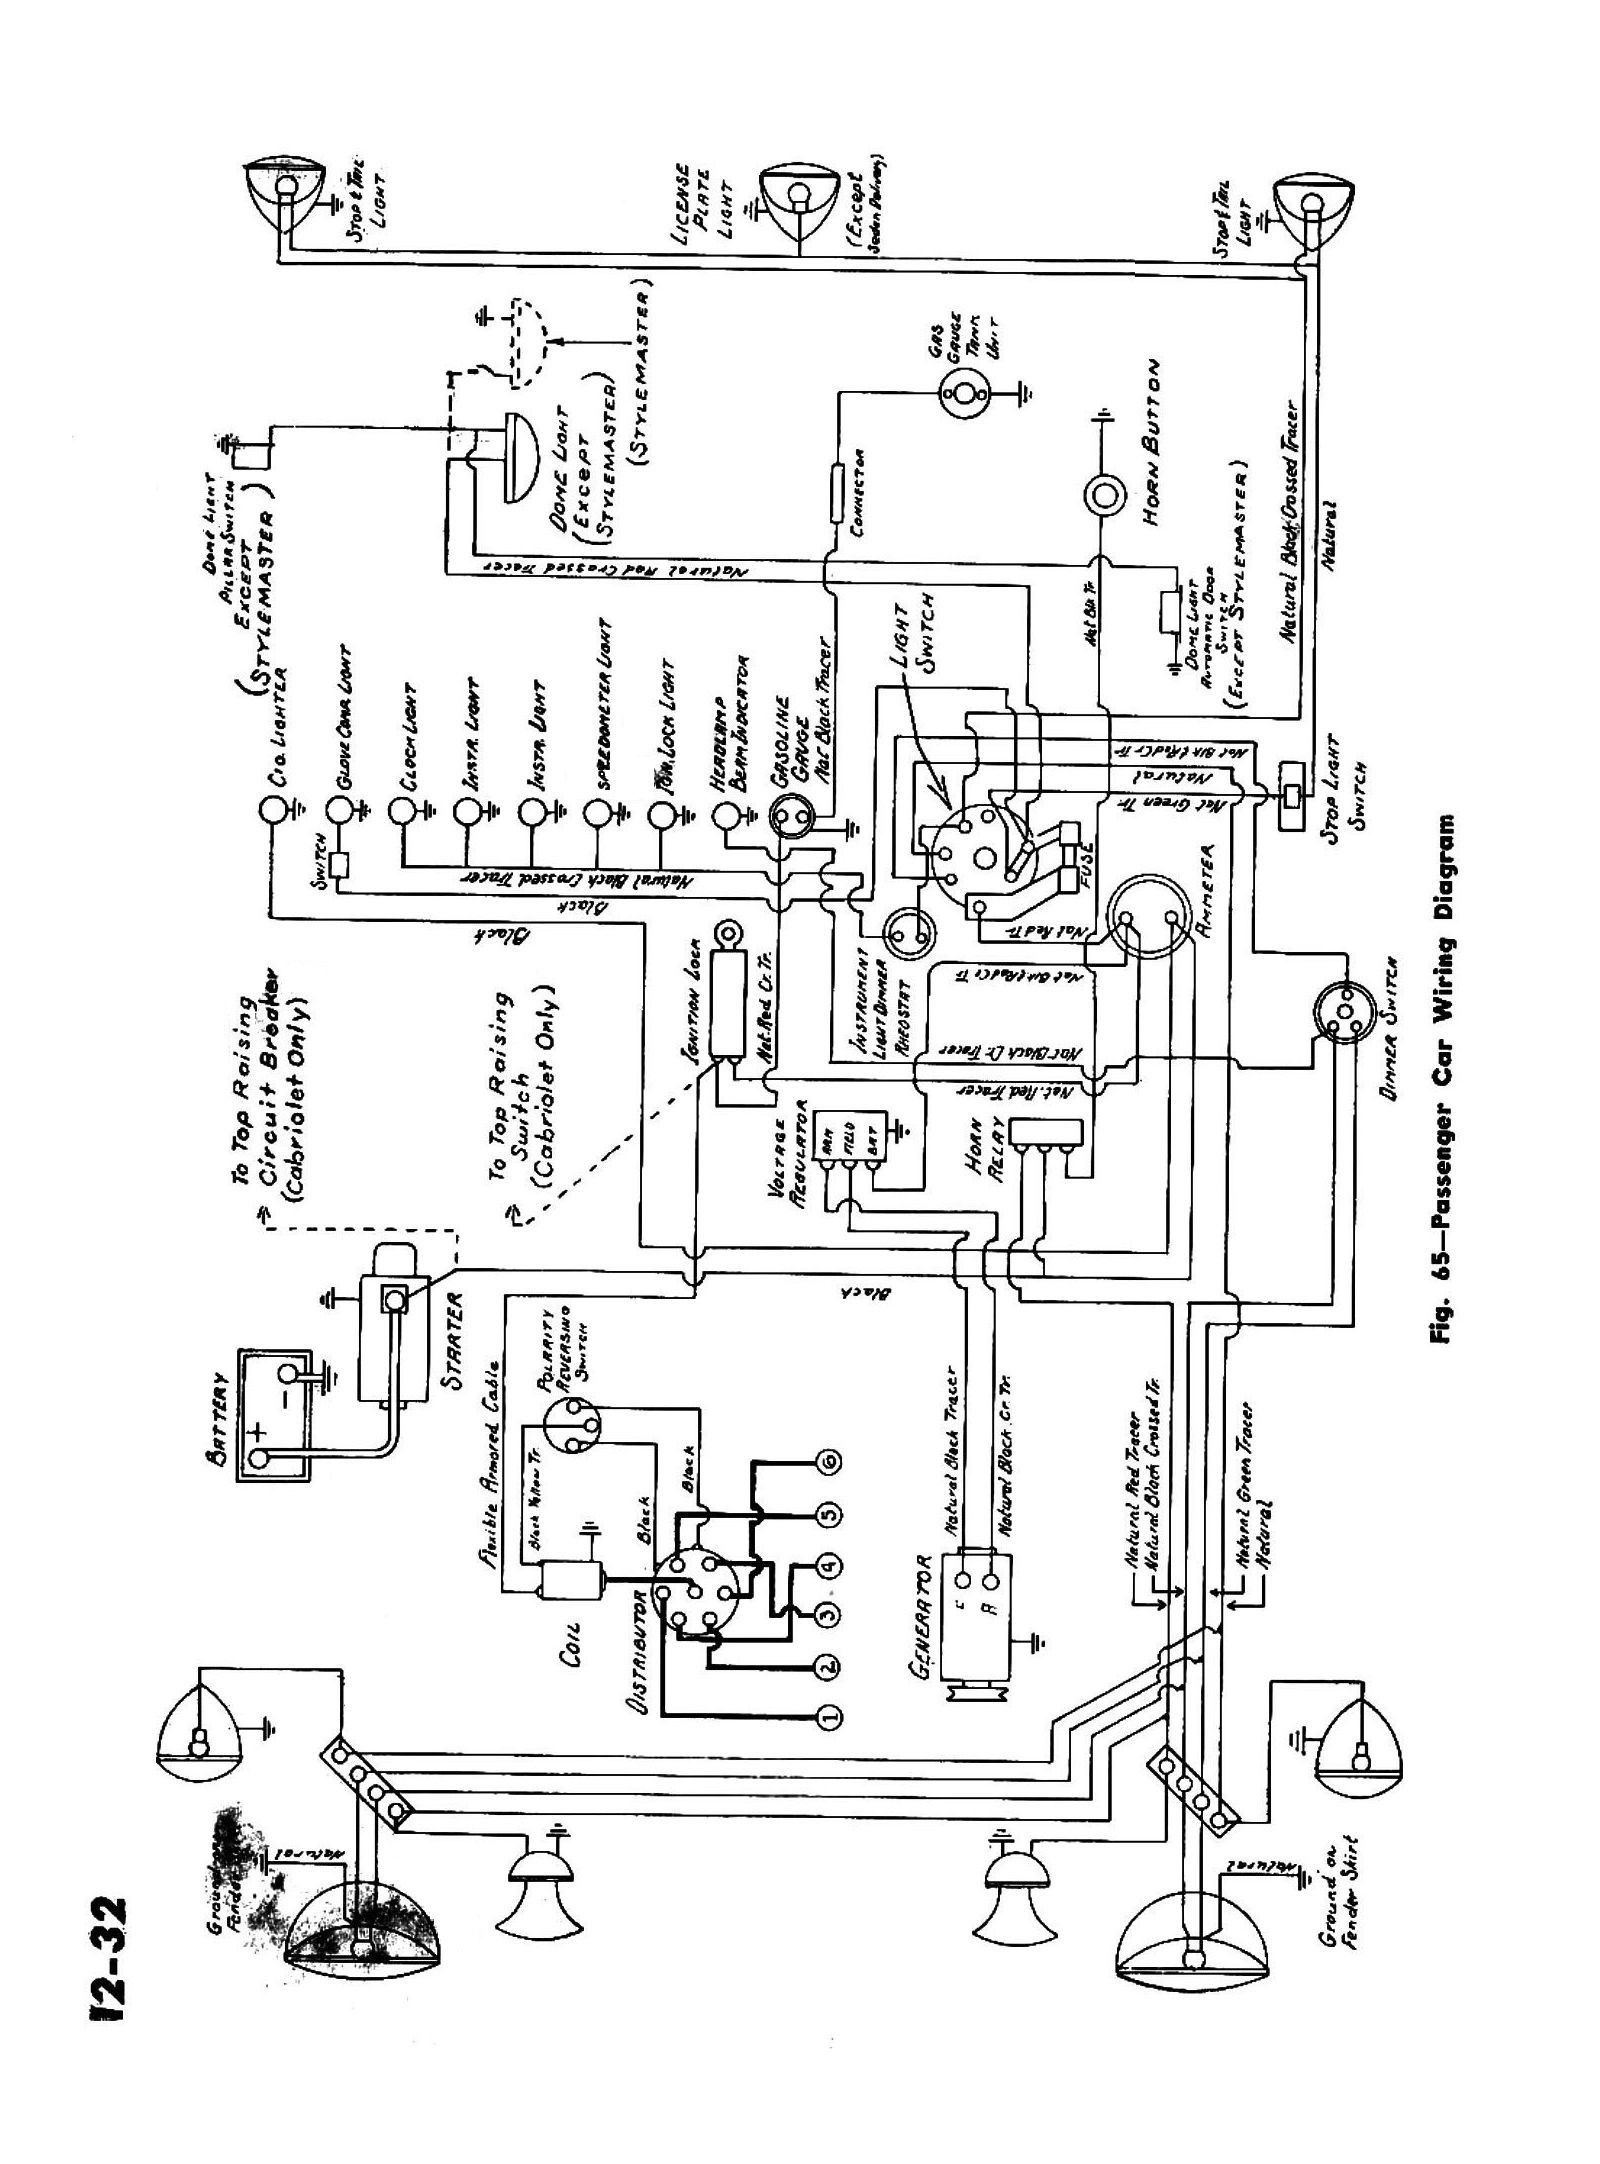 New Simple Electrical Wiring Diagram Wiringdiagram